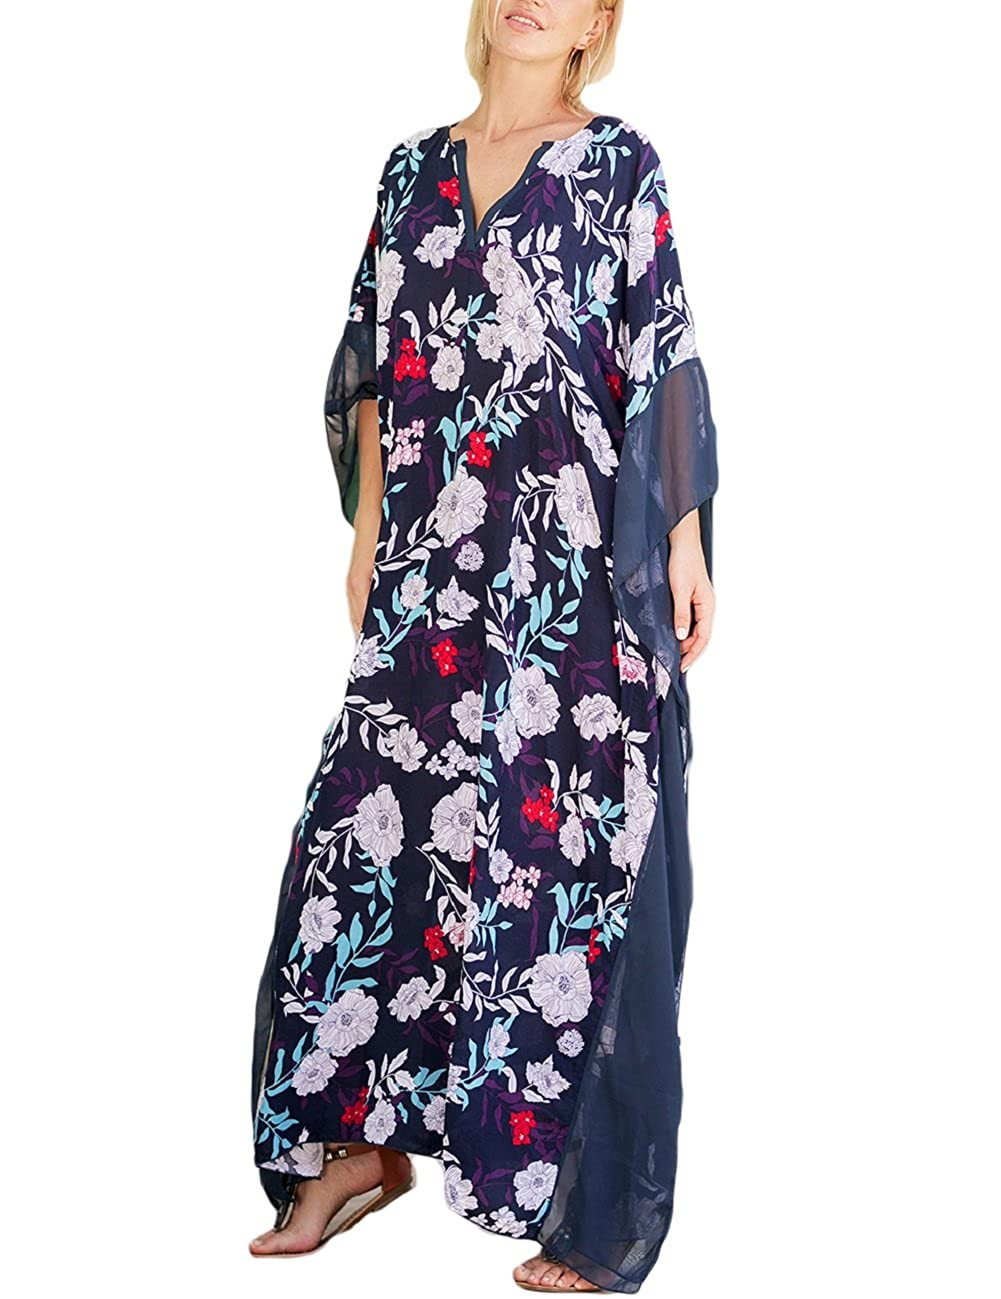 f6305c5abb Bsubseach Women Bathing Suits Cover Up Ethnic Print Kaftan Beach Maxi Dress  YM1900-5